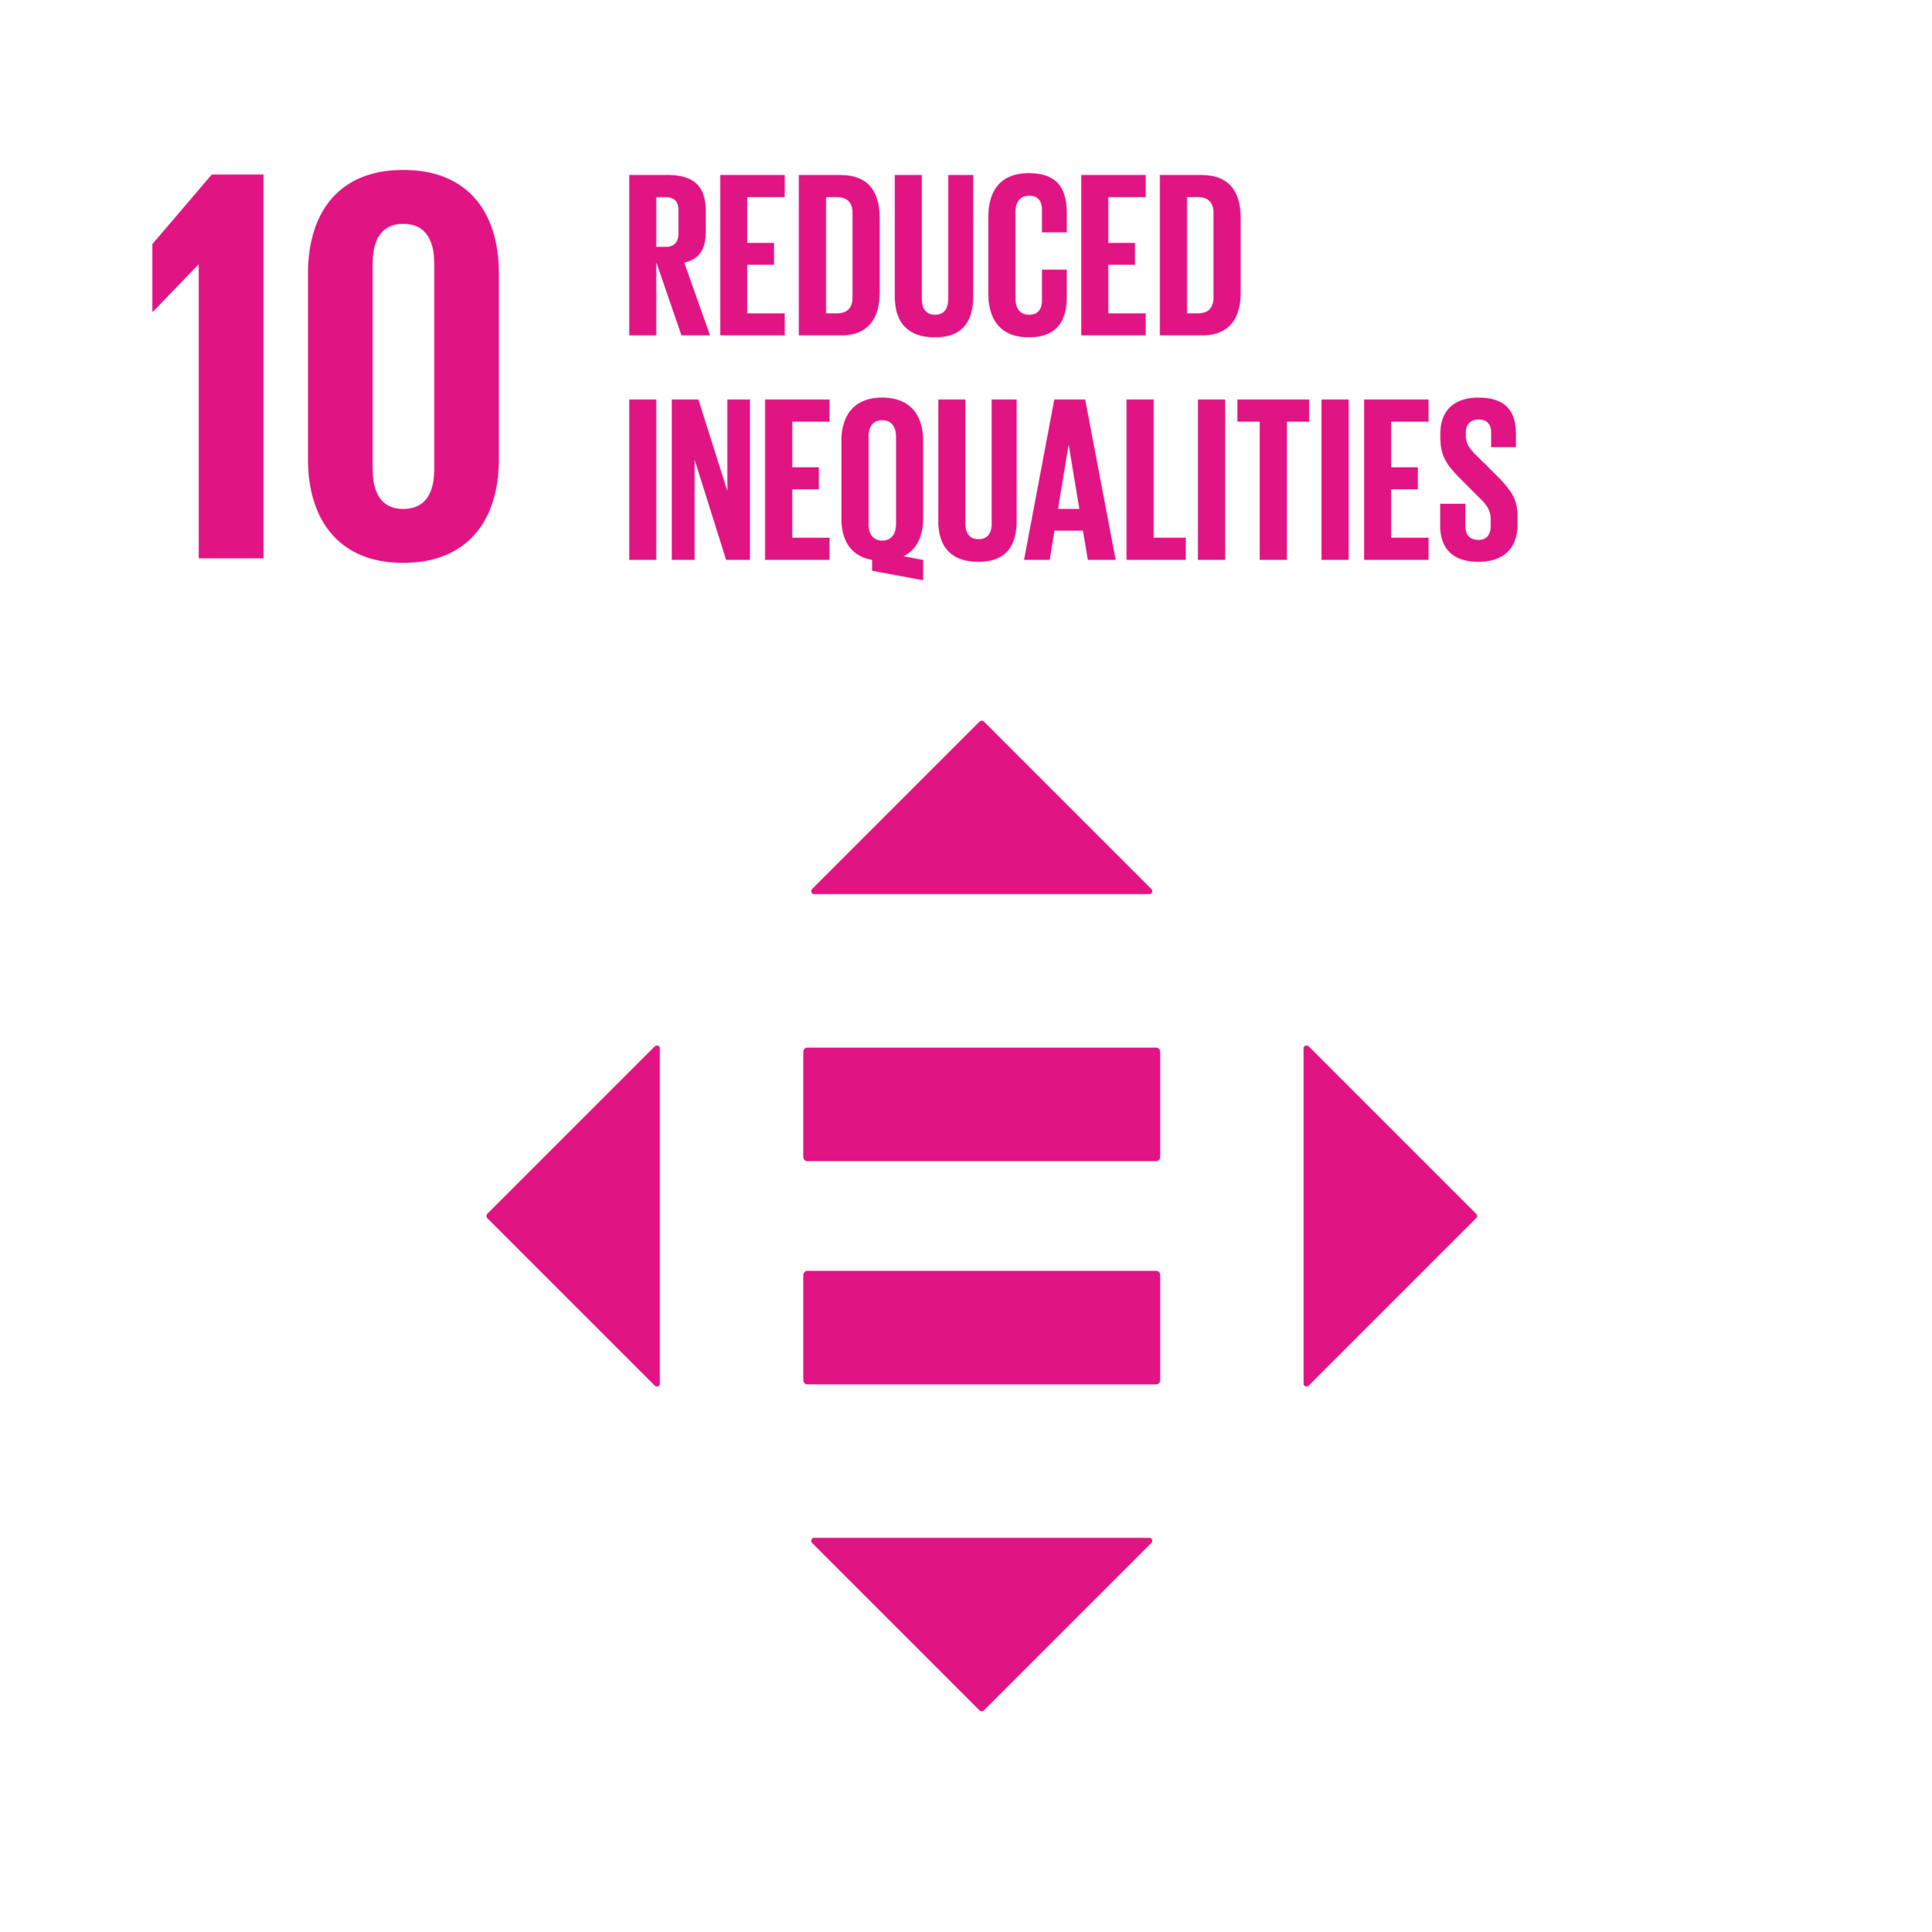 E_INVERTED-SDG-goals_icons-individual-RGB-10.png